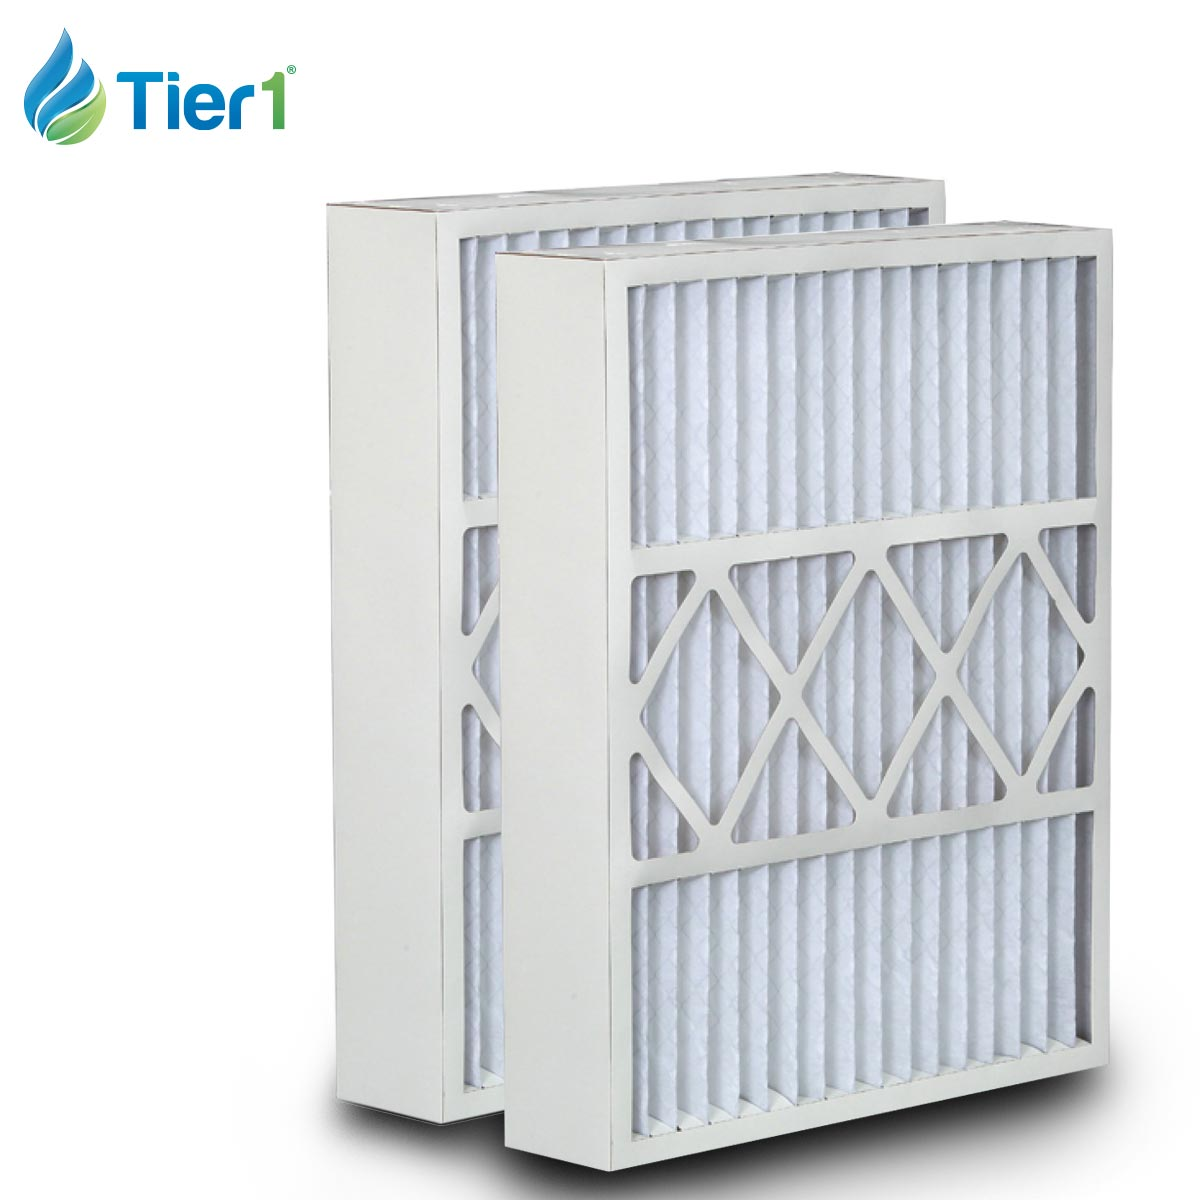 Tier1 brand replacement for Electro Air - 16 x 26 x 5 - MERV 13 (2-Pack) TIER1-DPFI16X26X5M13DEA